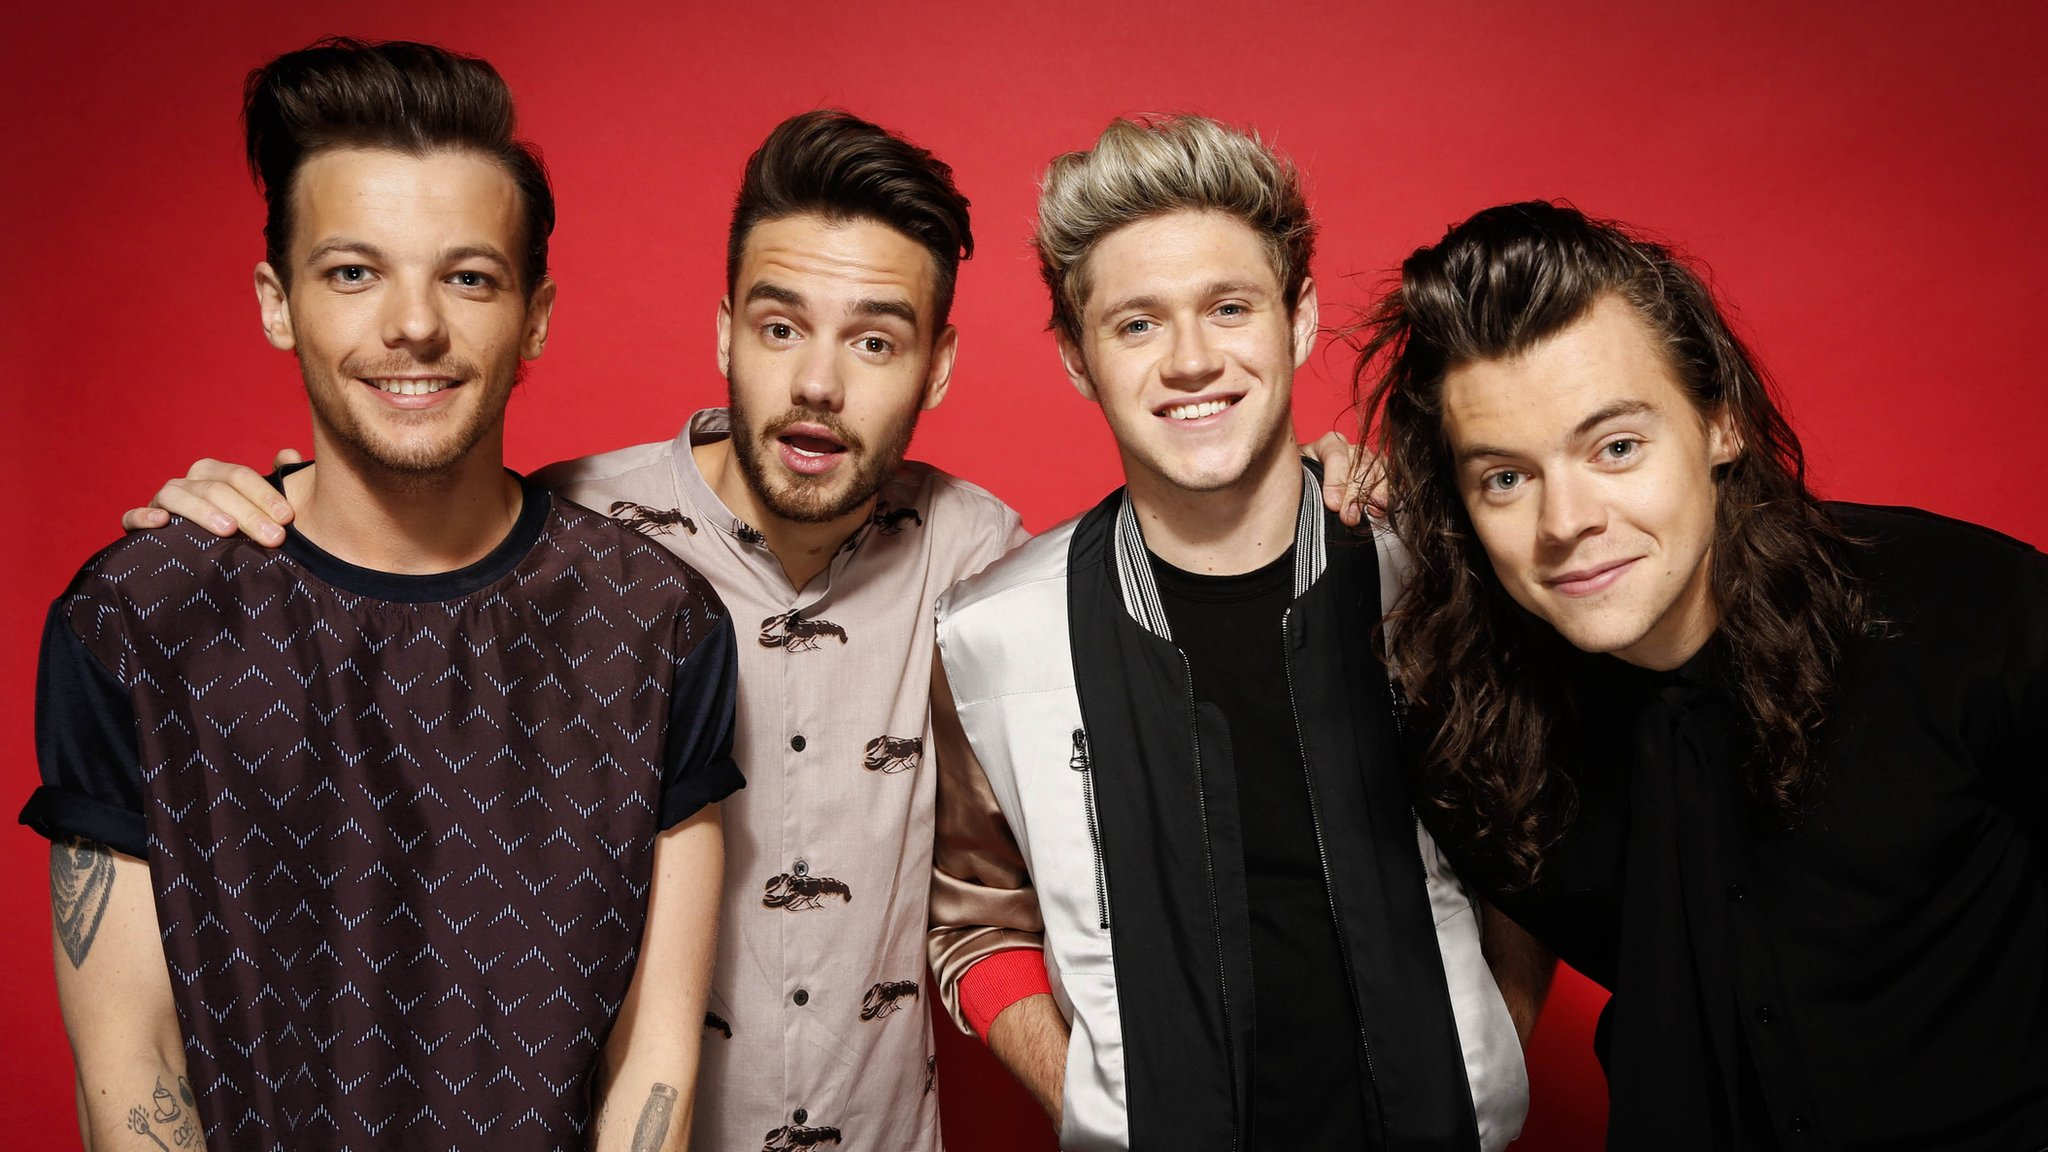 One Direction reunion: Are they getting back together? - CBBC Newsround